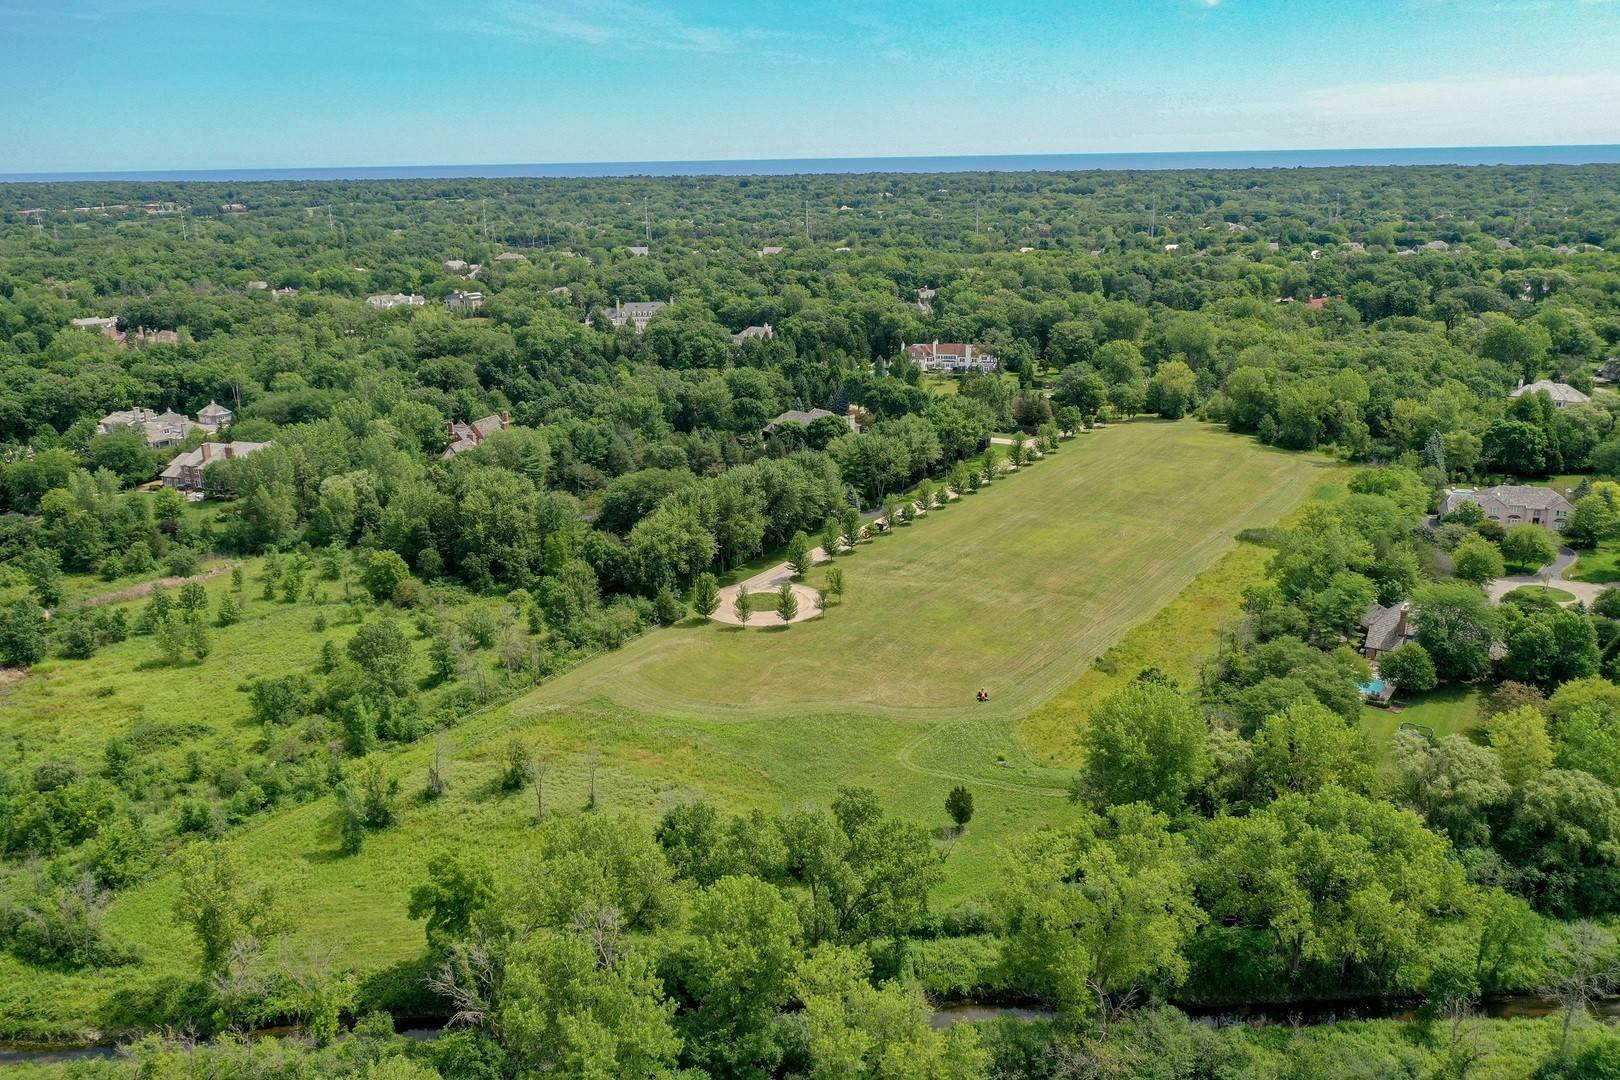 Land for Sale at Lot 5 Whitehall Lane Lake Forest, Illinois 60045 United States